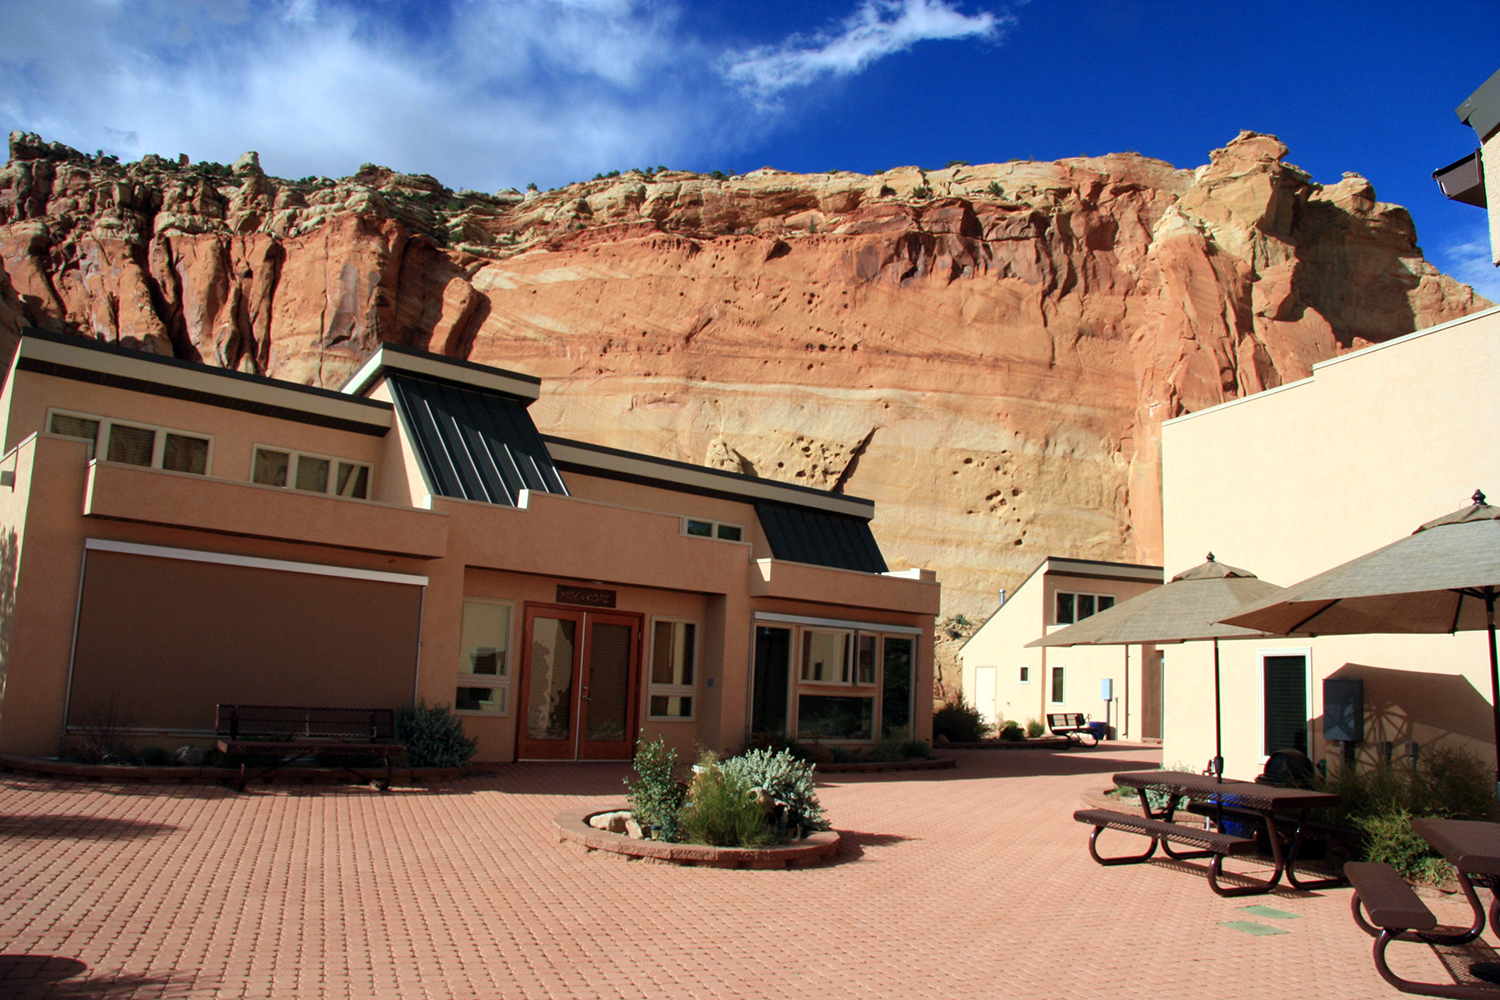 Location: Capitol Reef Field Station